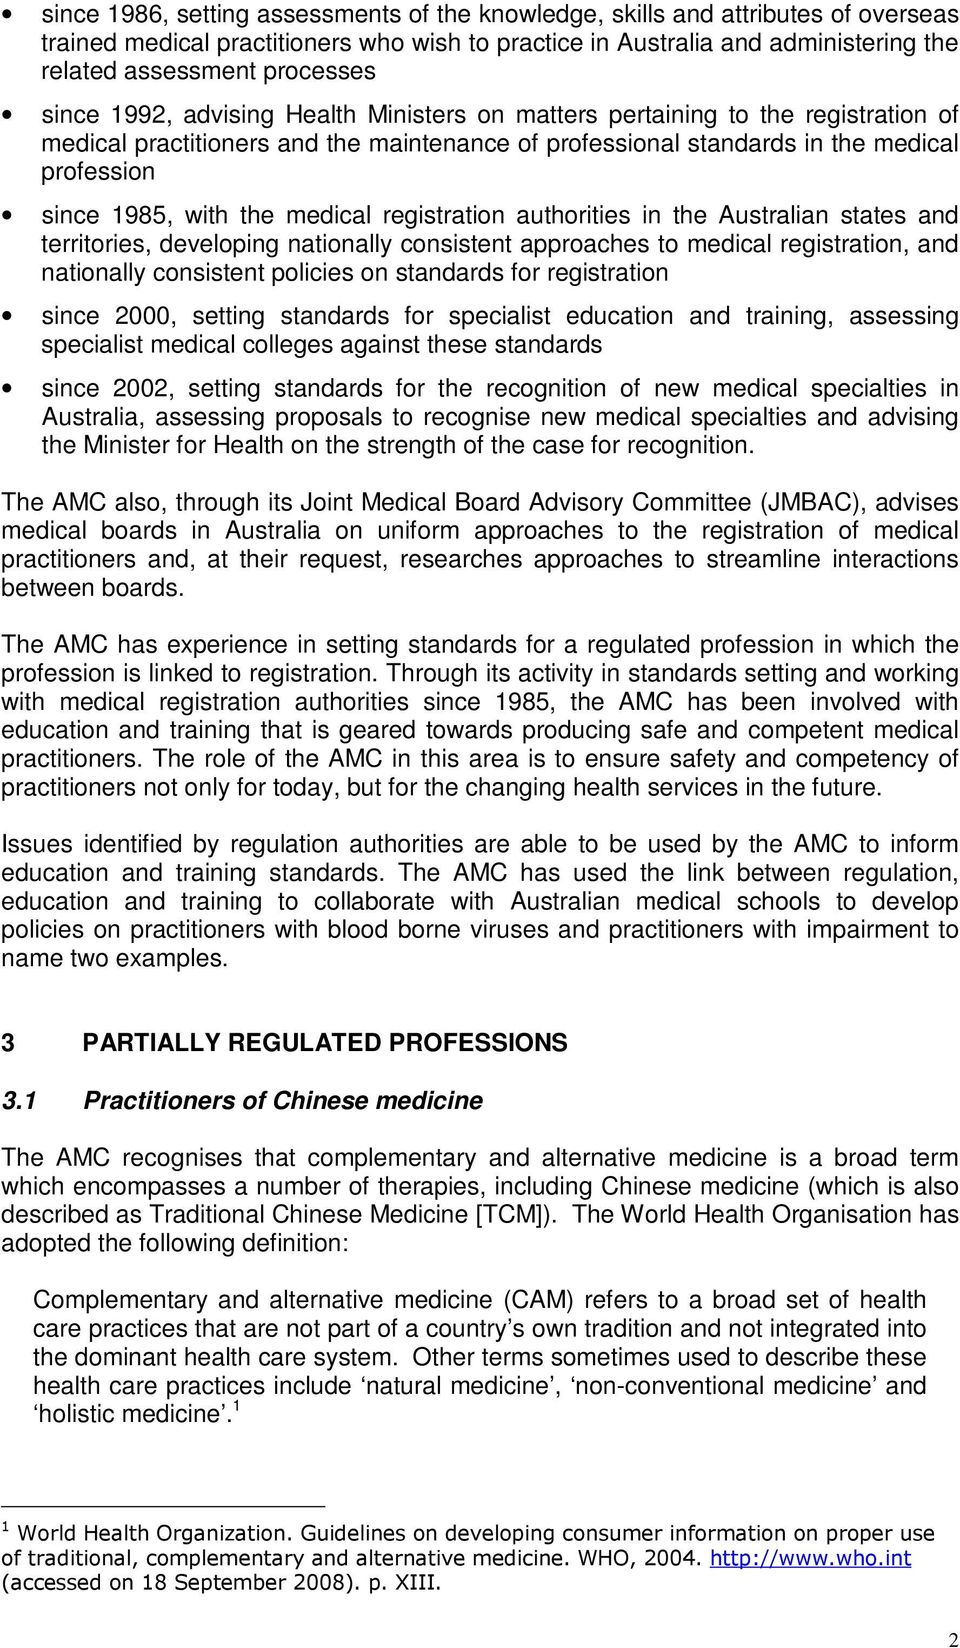 medical registration authorities in the Australian states and territories, developing nationally consistent approaches to medical registration, and nationally consistent policies on standards for